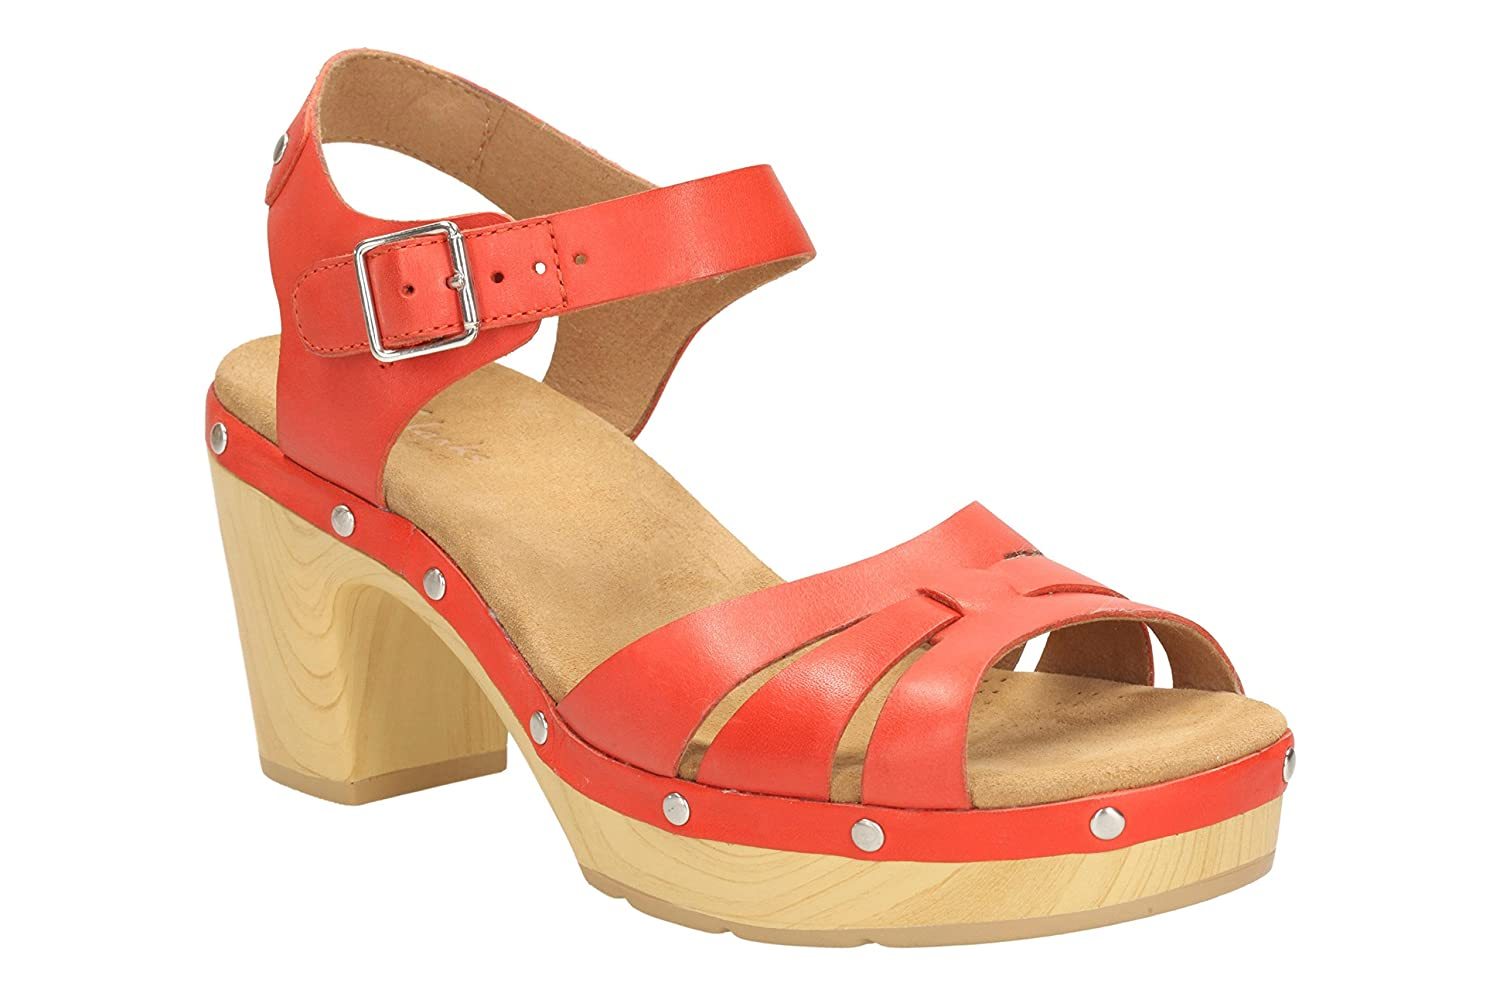 d42374186b4 Clarks Women s 261175584 Fashion Sandals red red  Amazon.co.uk  Shoes   Bags